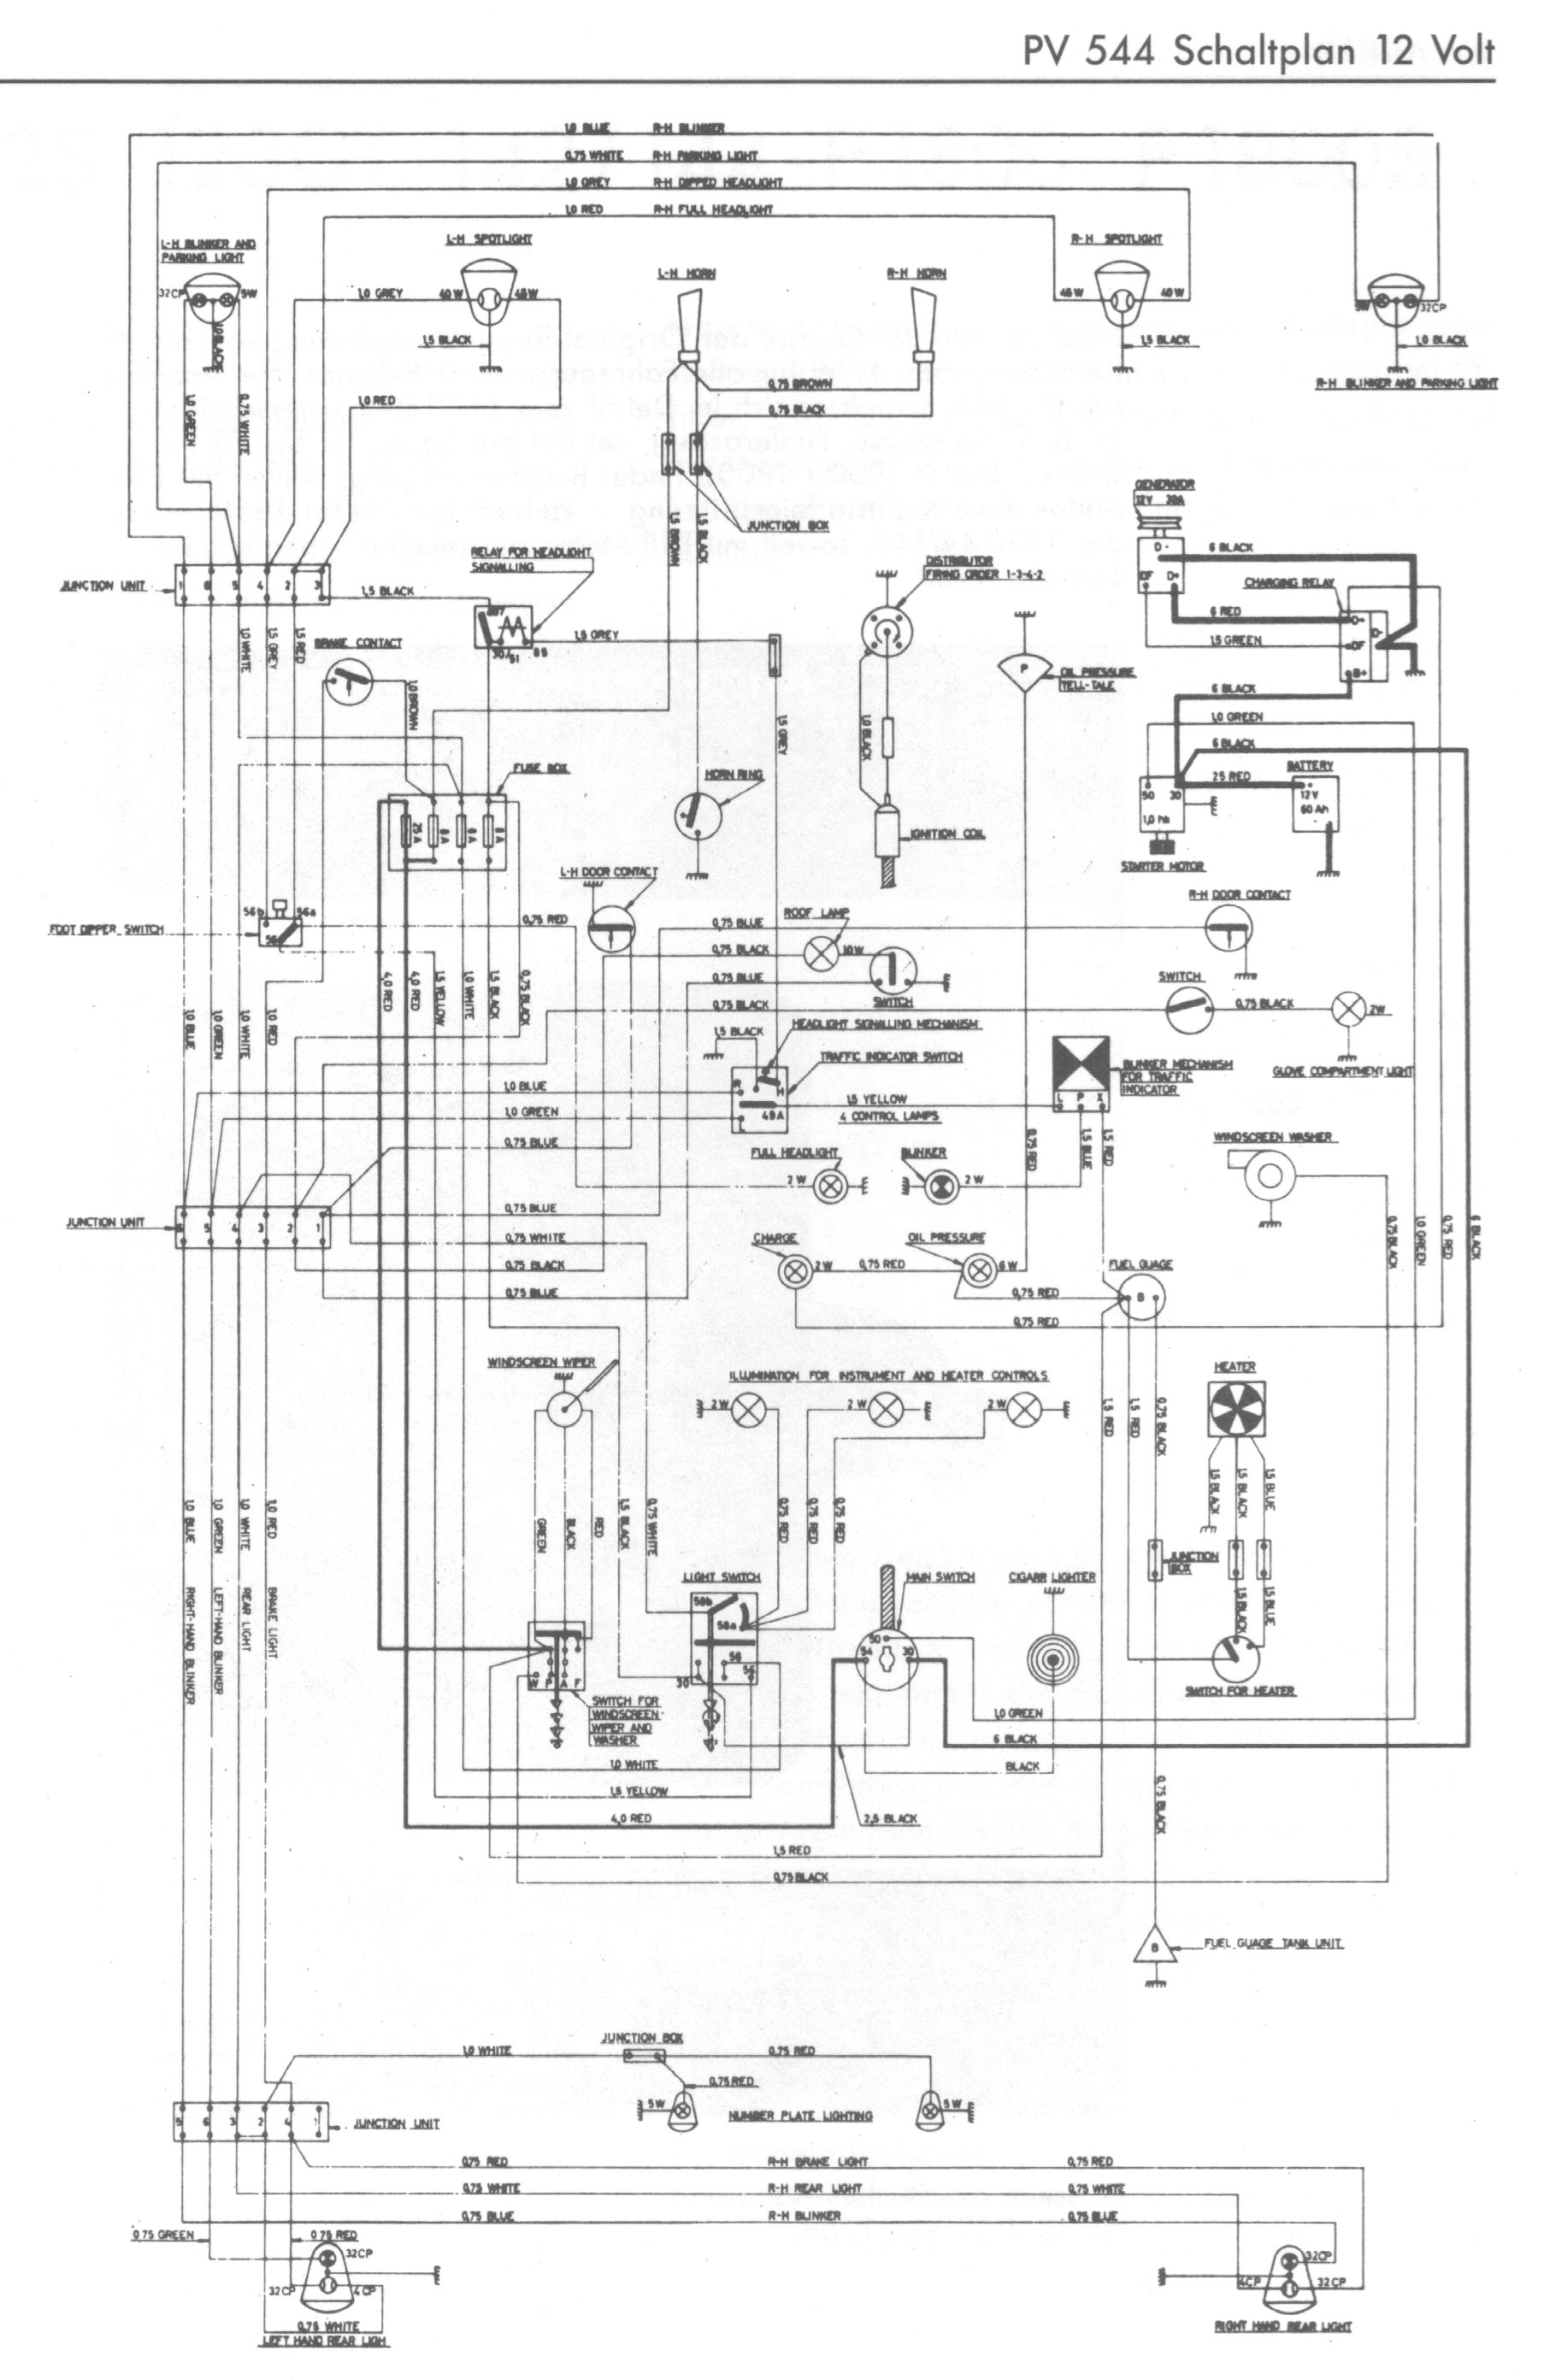 volvo 240 brake light wiring diagram 1990 volvo 740 wiring diagram. volvo. wiring diagram images 1999 tahoe brake light wiring diagram